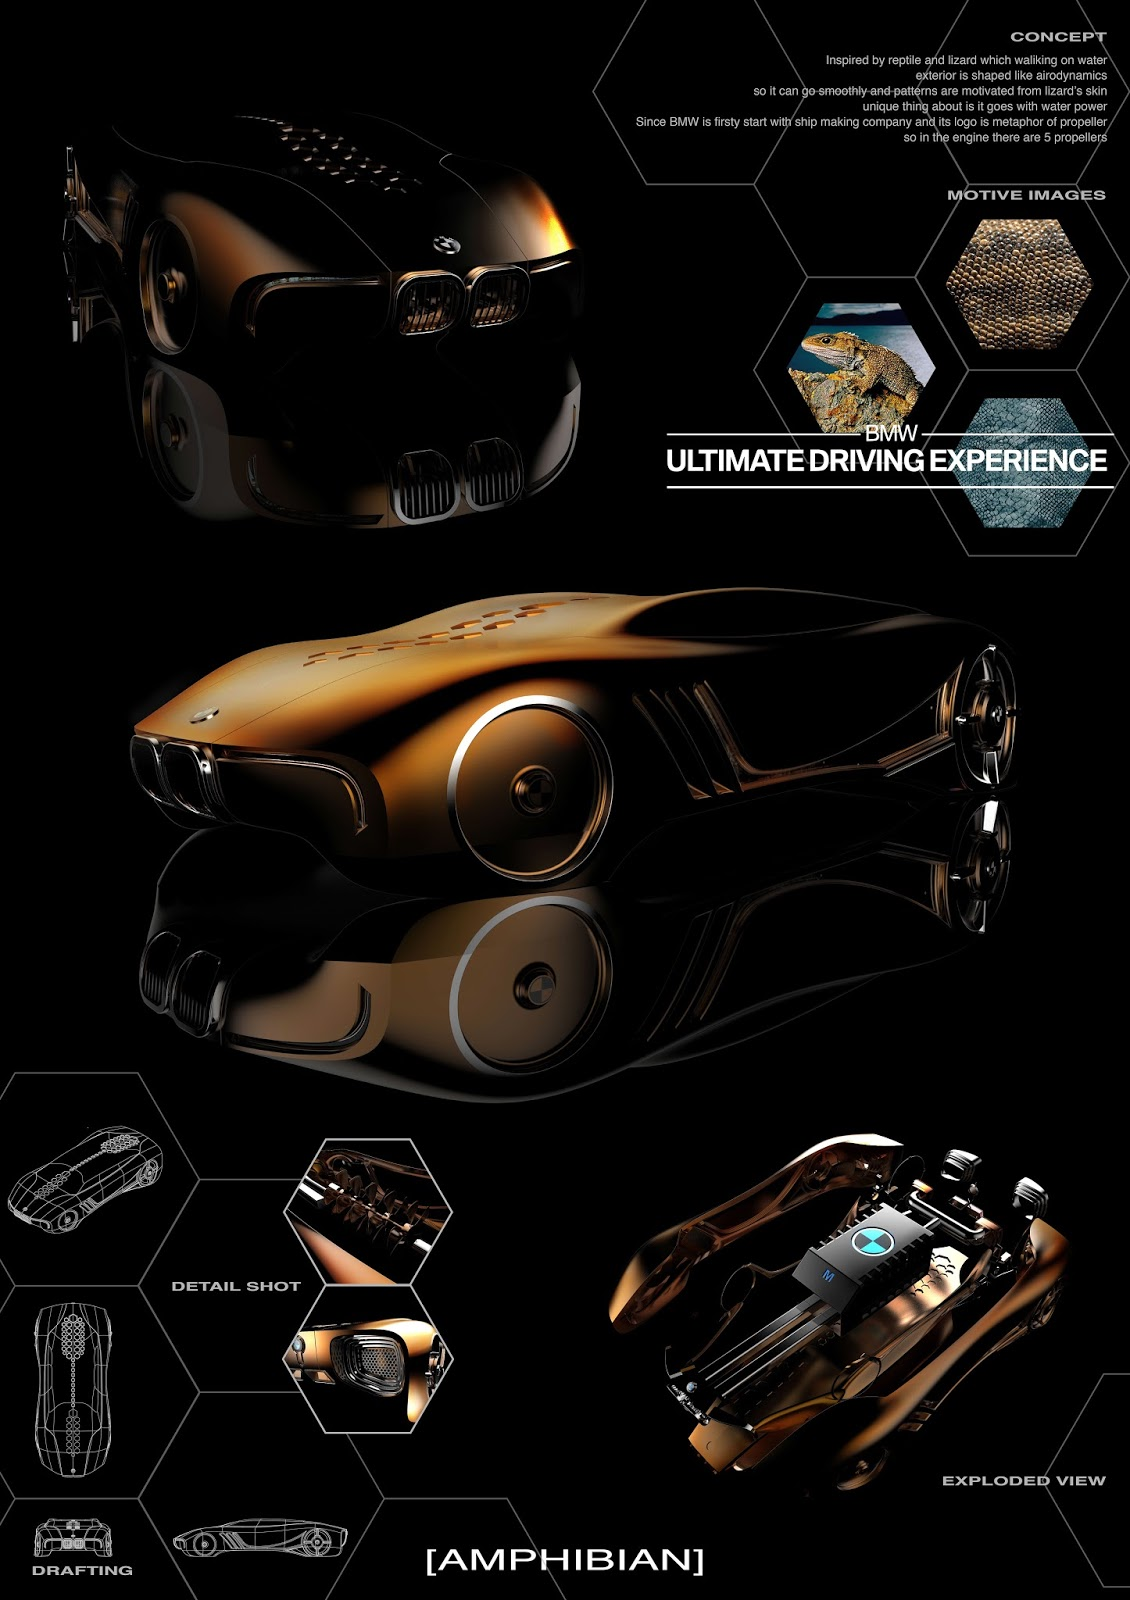 Bmw Amphibian By Kyungwon Jeong Motivezine Engine Exploded View Since Is Firstly Start With Ship Making Company And Its Logo Metaphor Of Propeller So In The There Are Five Propellers